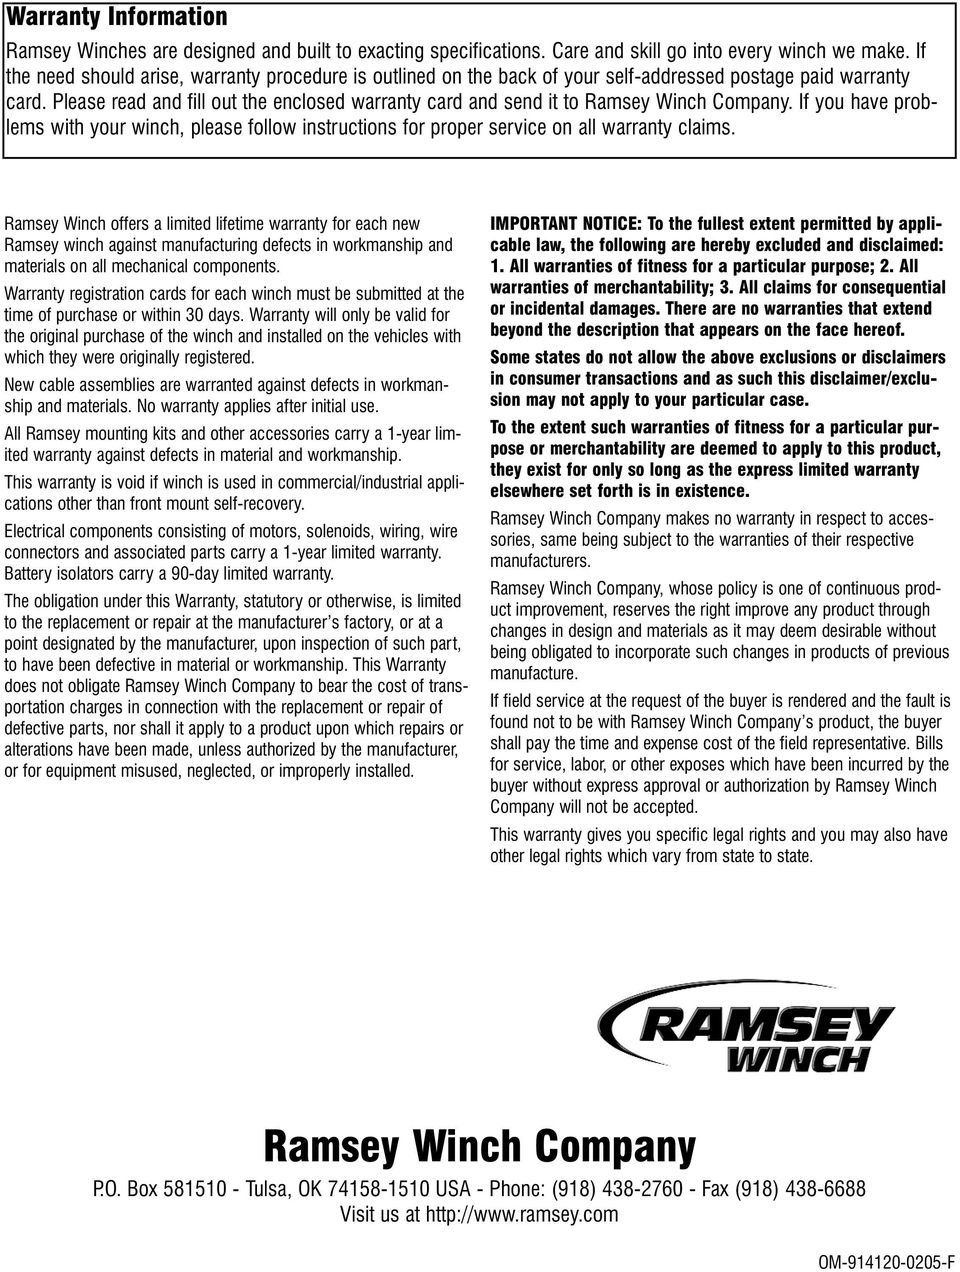 medium resolution of please read and fill out the enclosed warranty card and send it to ramsey winch company